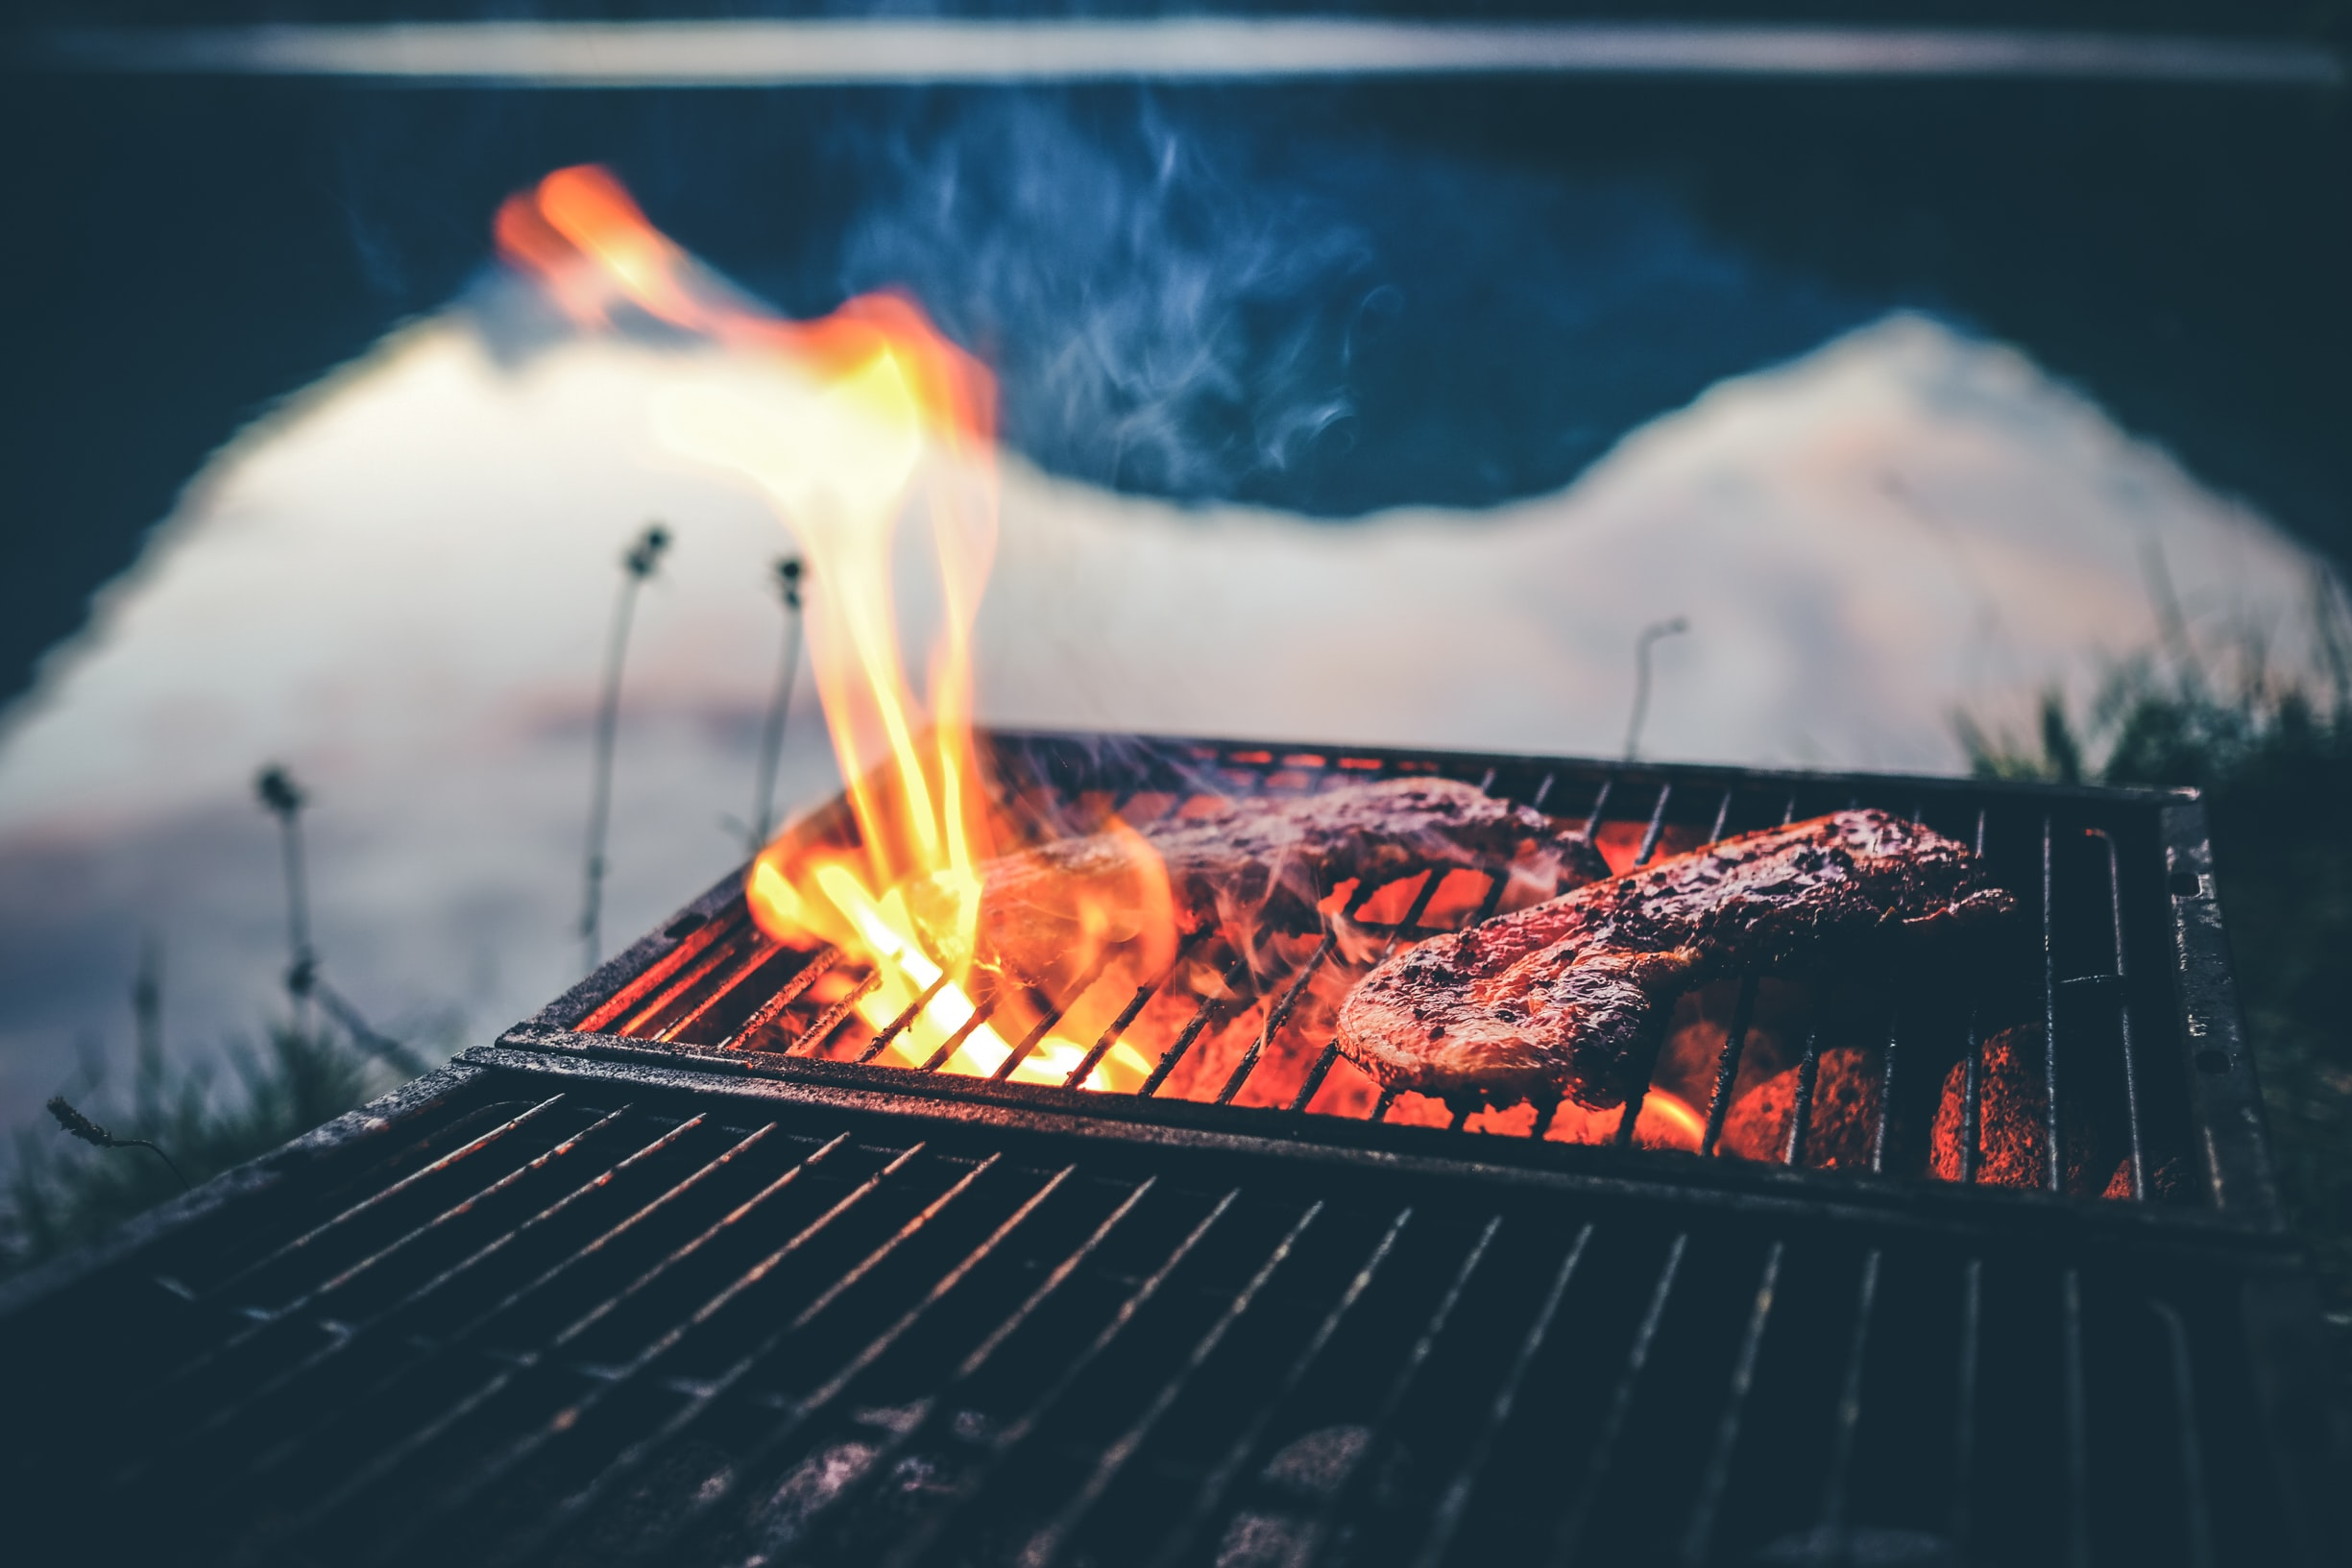 steak on charcoal grill with fire